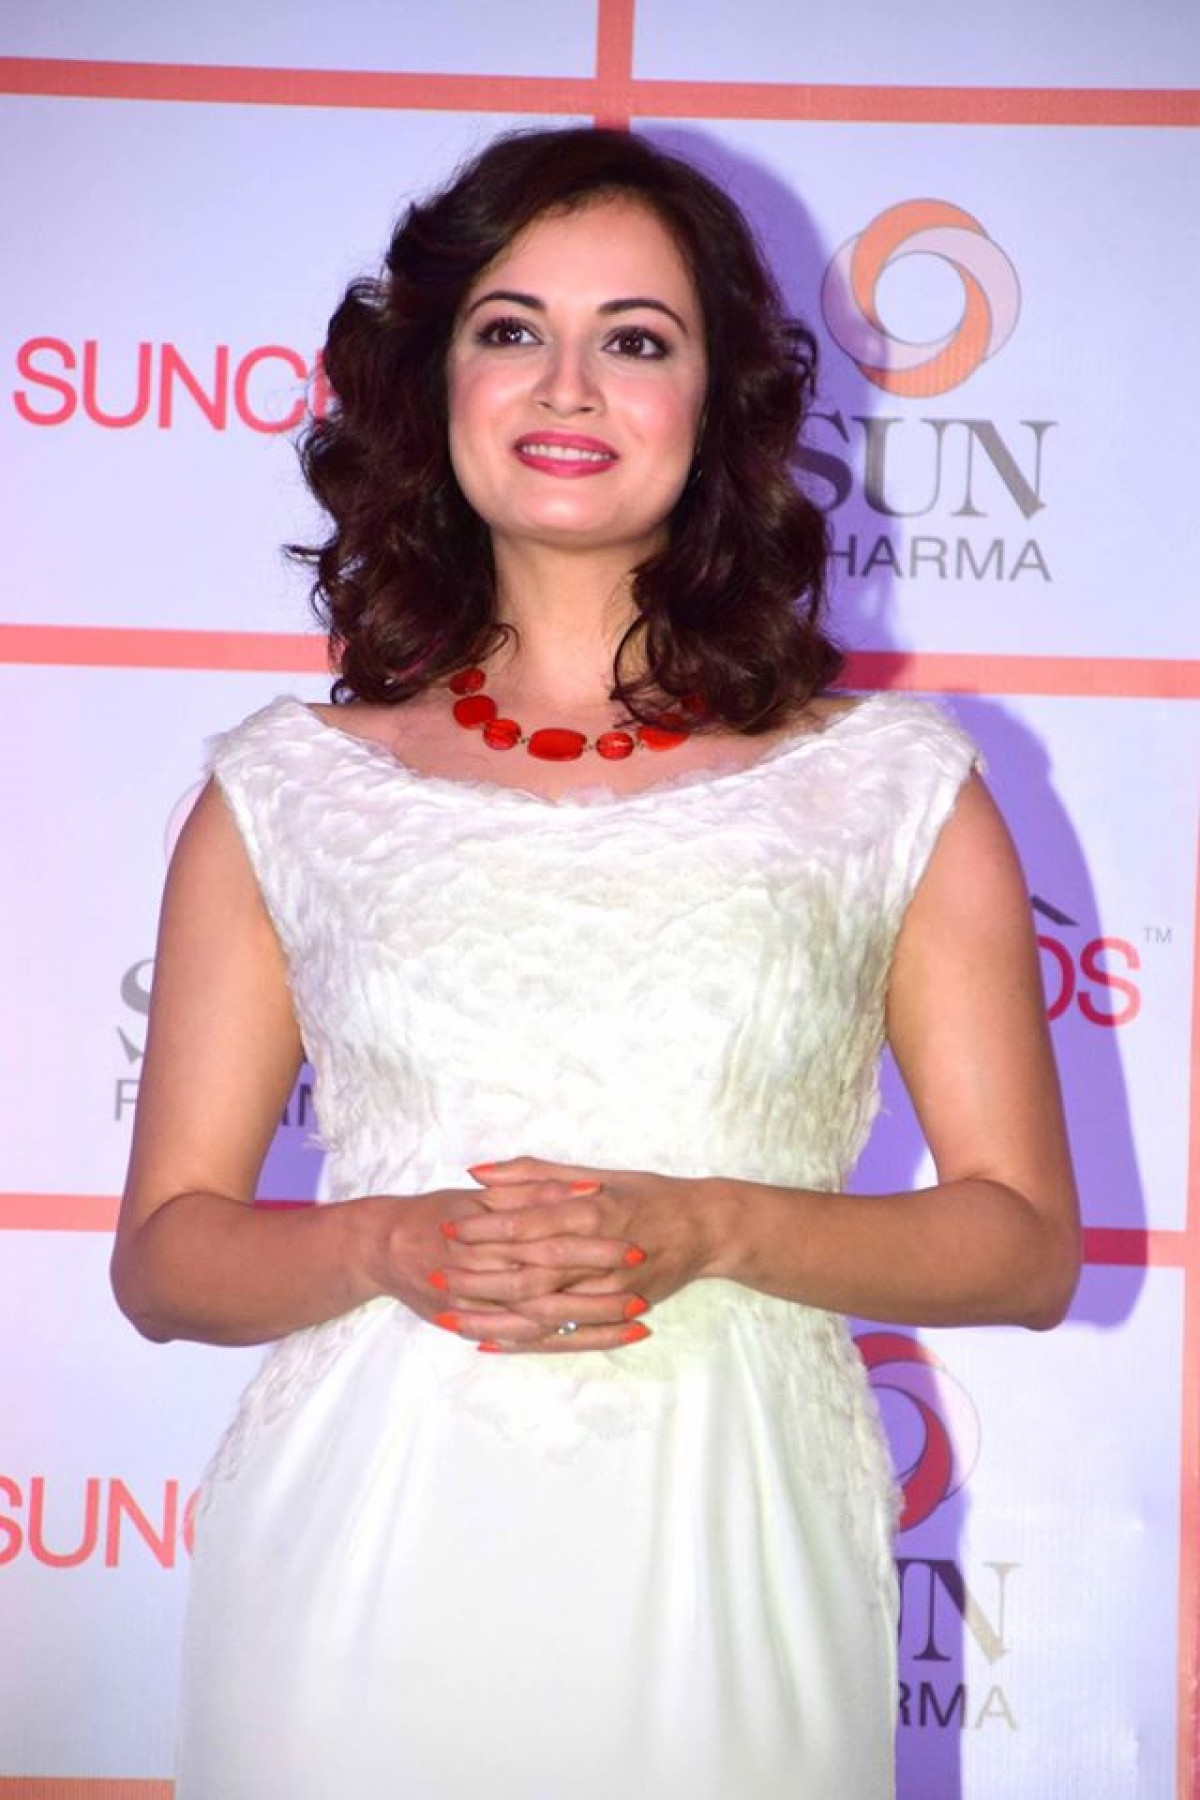 Dia Mirza Launch of Sun Pharmas Suncros Sunscreen in Mumbai